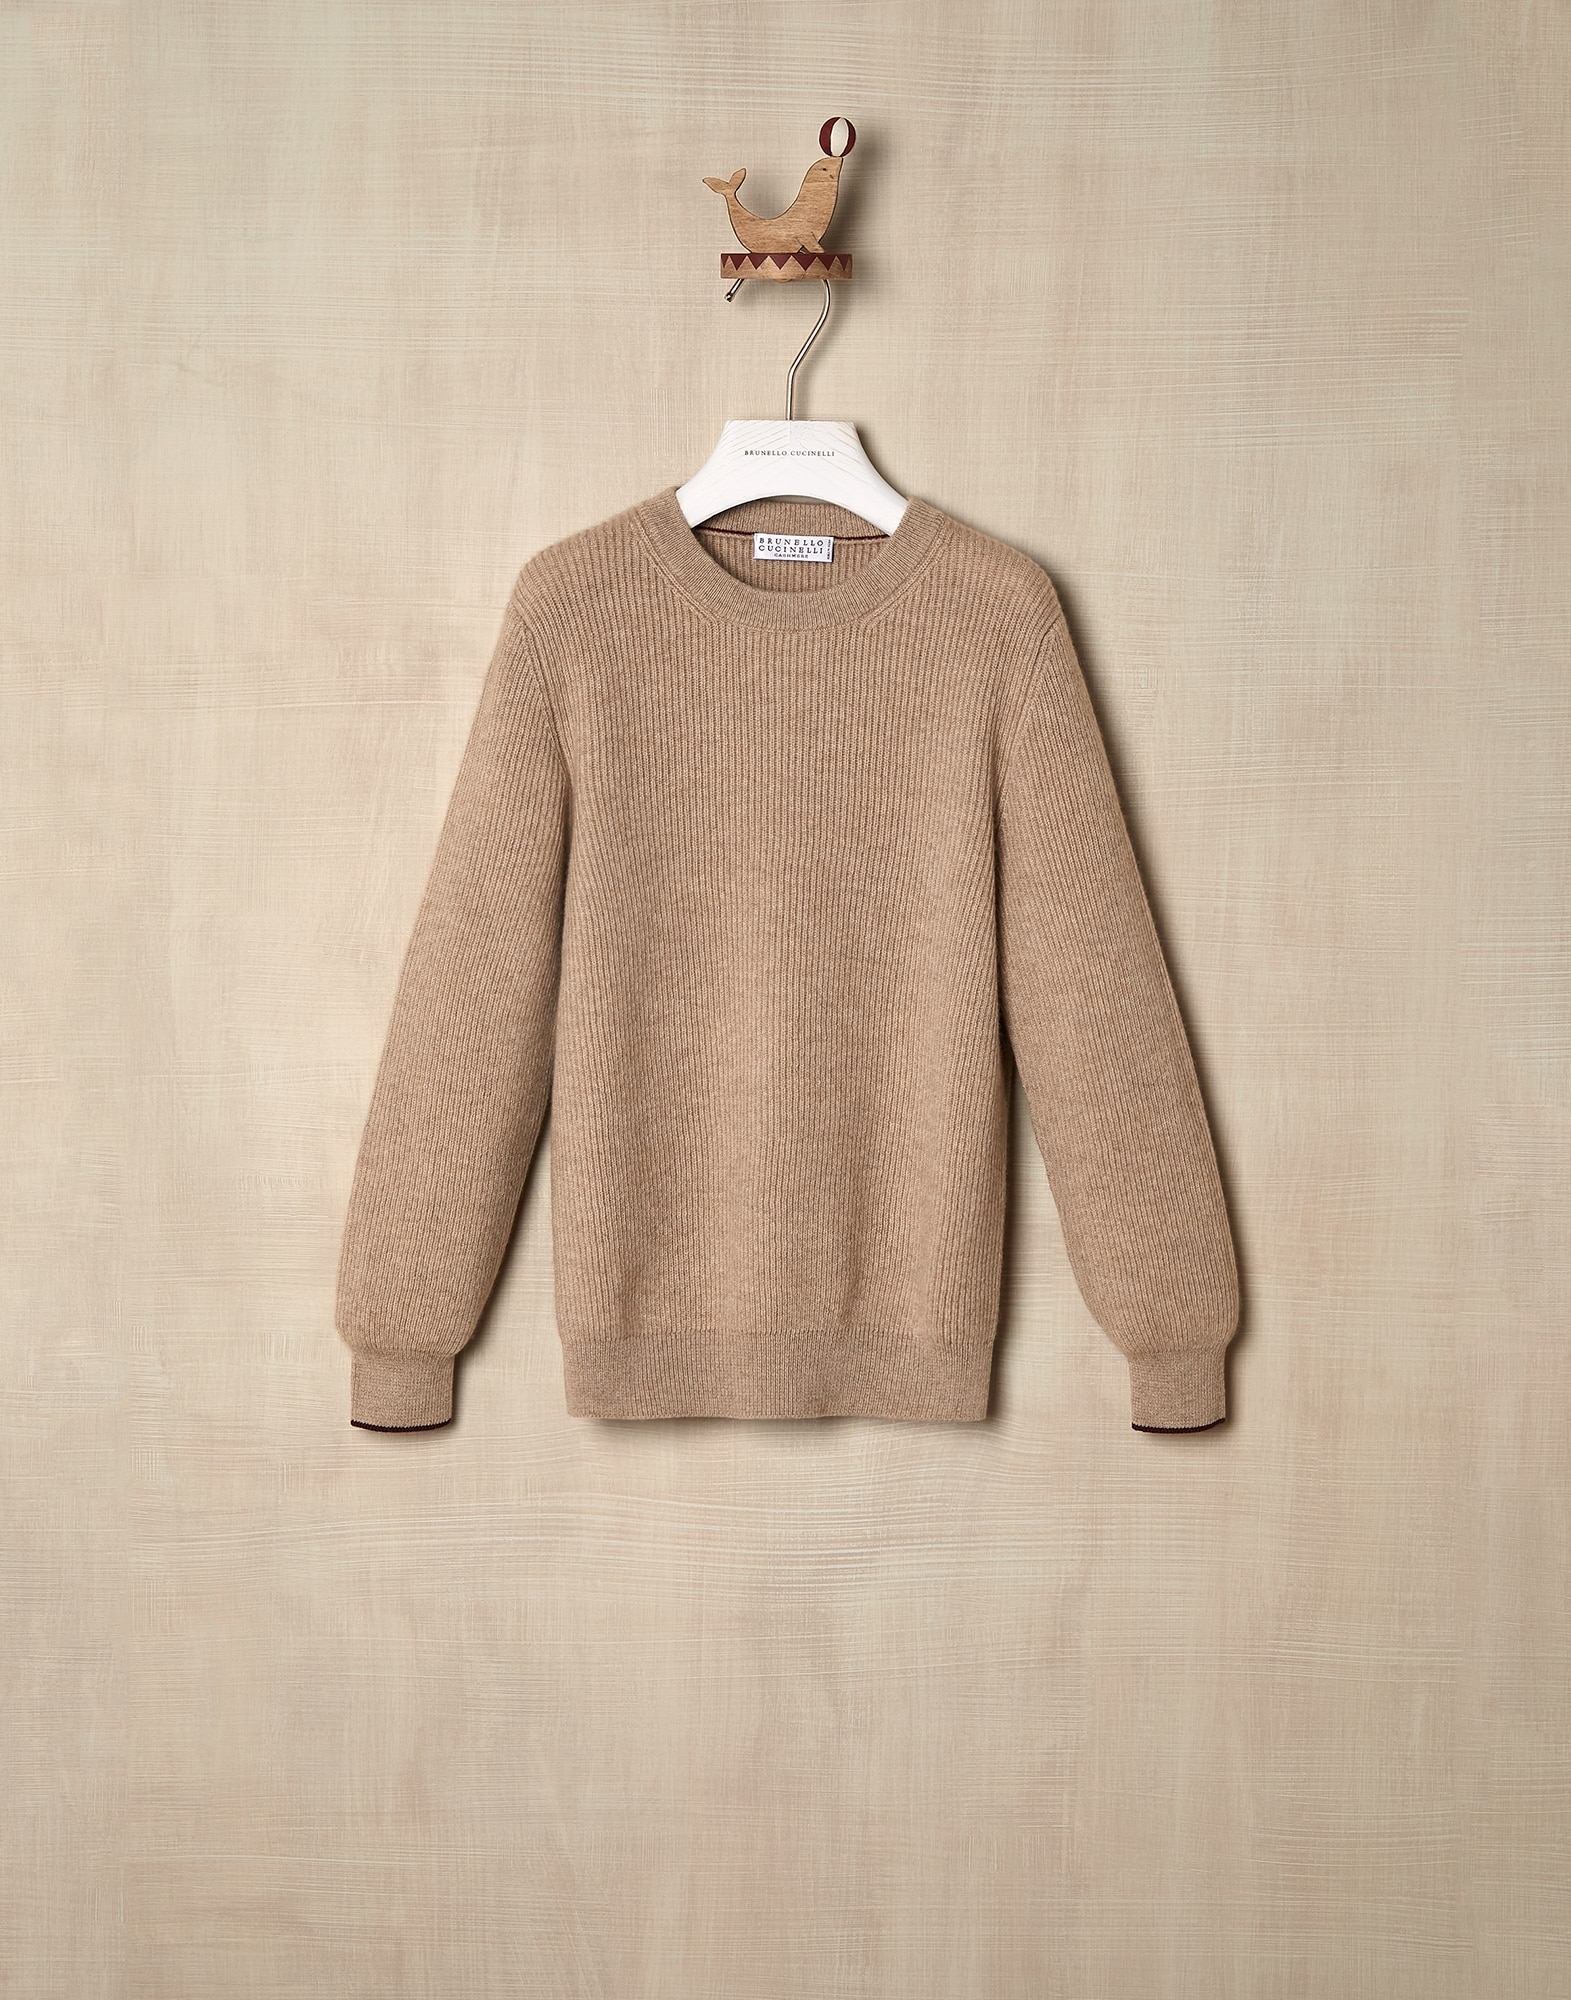 Crewneck Sweater Brown Boy 0 - Brunello Cucinelli